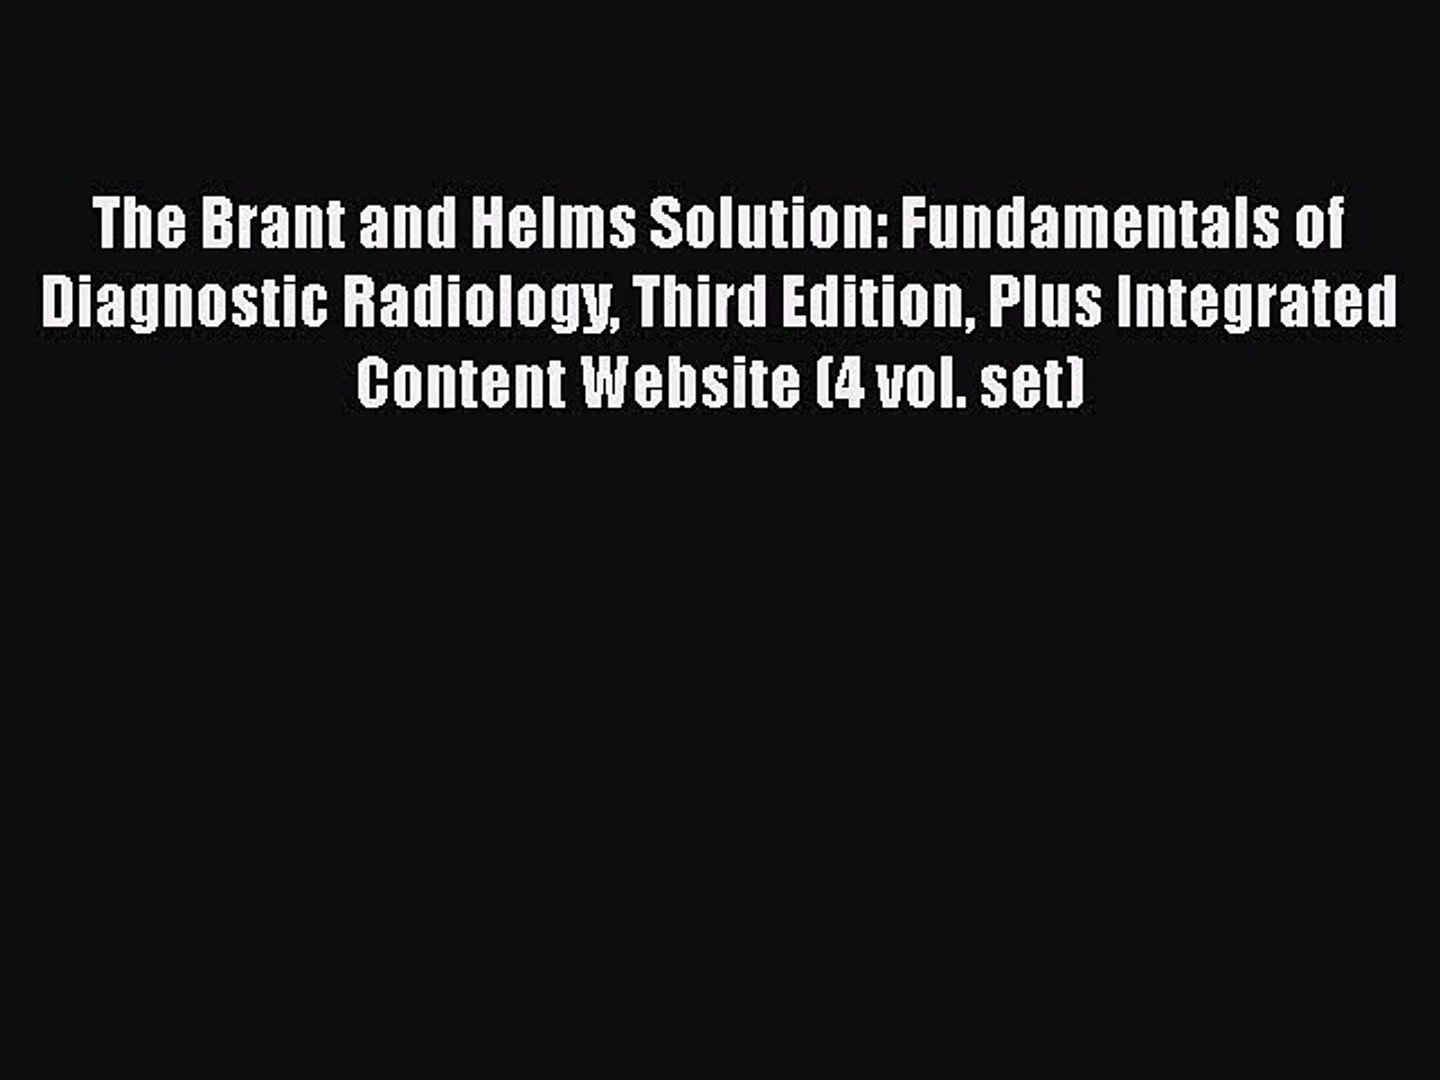 PDF Download The Brant and Helms Solution: Fundamentals of Diagnostic Radiology Third Edition